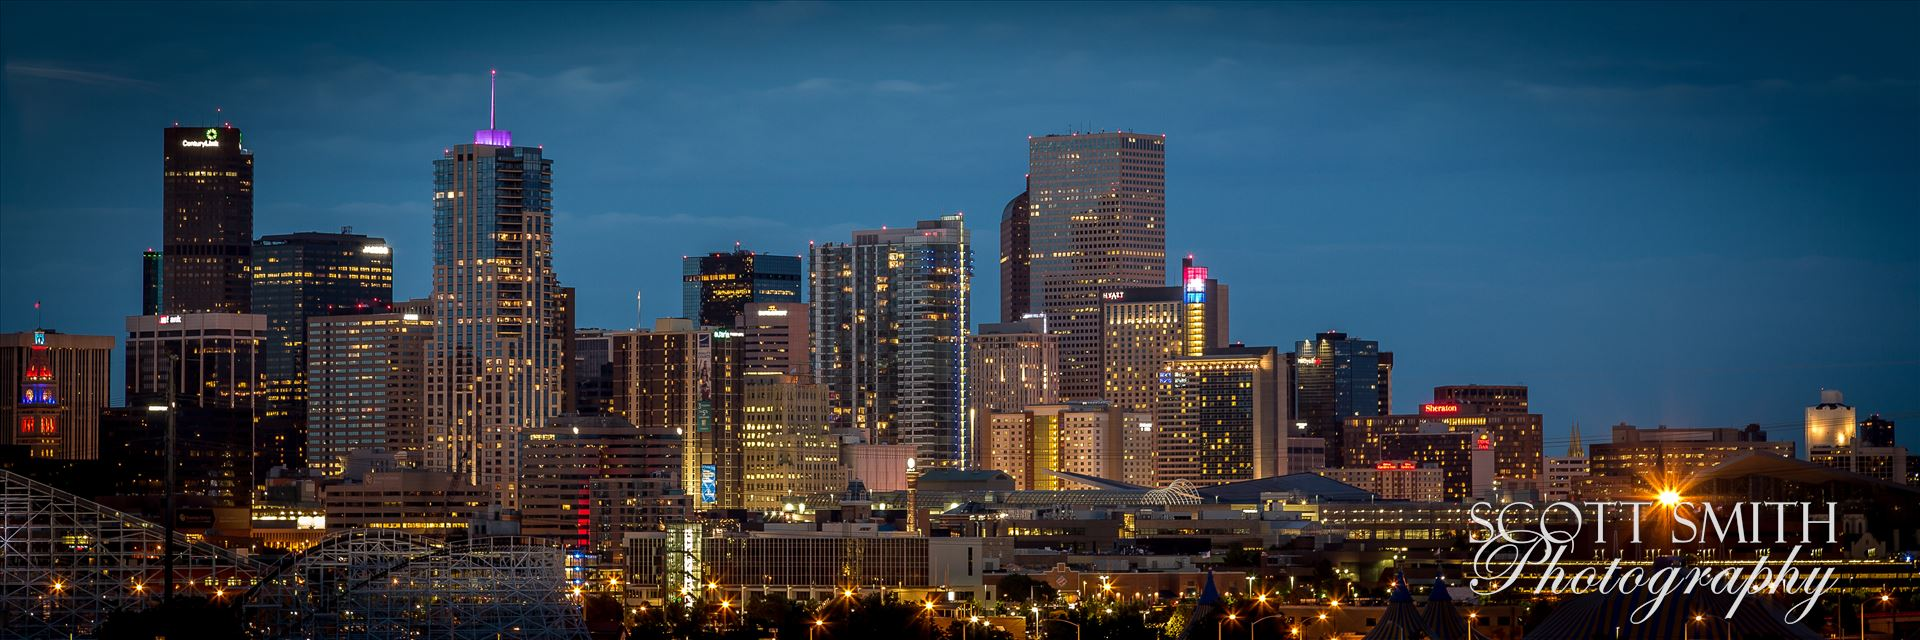 Denver at Night - The Denver skyline as seen from Mile High Stadium. by D Scott Smith